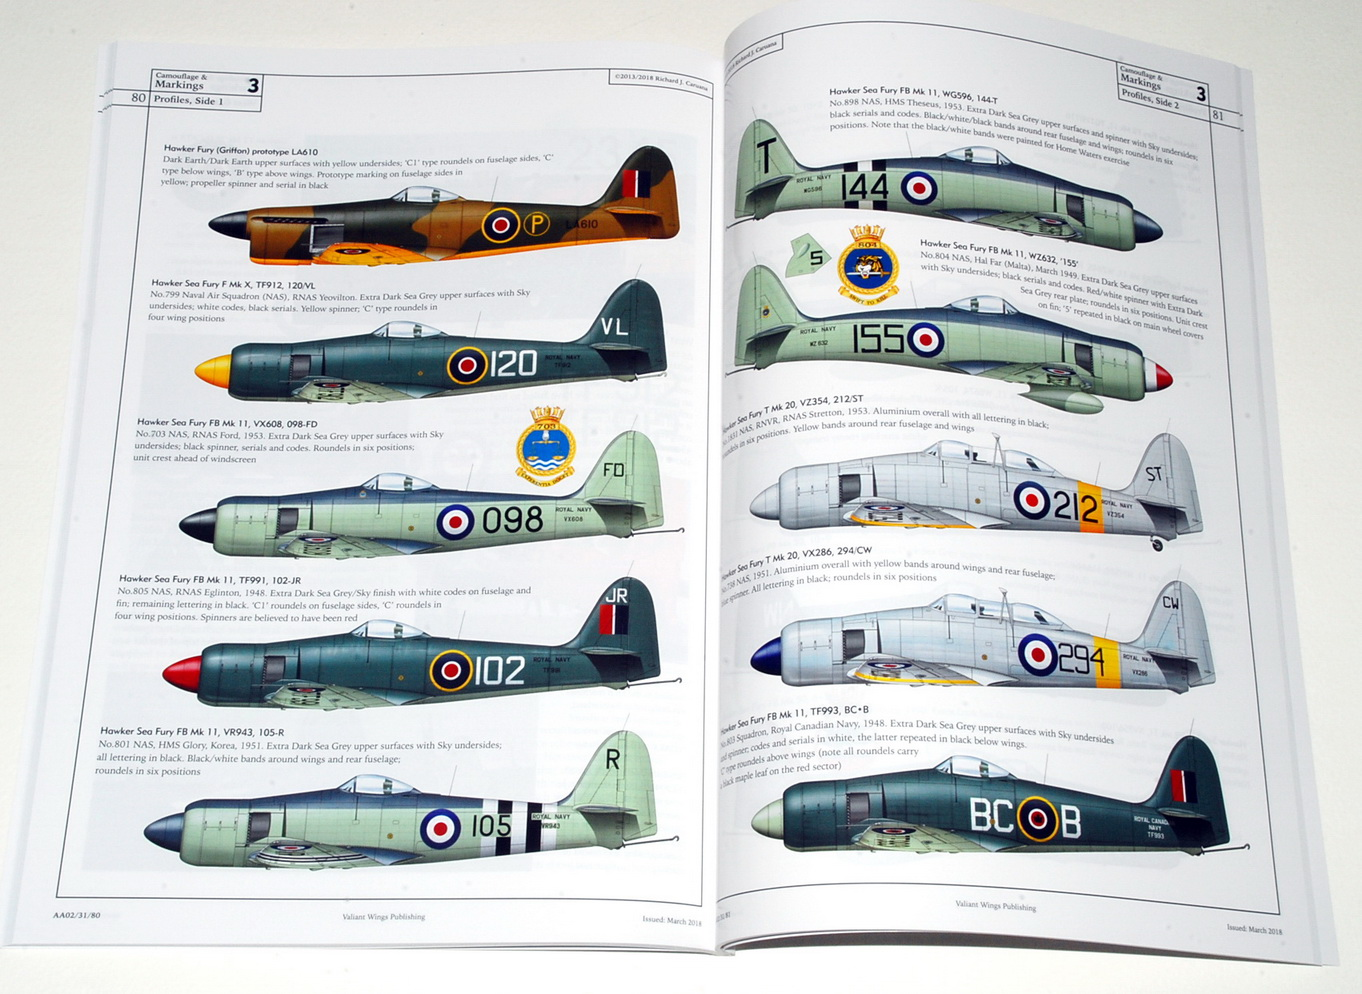 The Hawker Sea Fury, Airframe Album No.2 (Second Edition – Valiant Wings 2018)